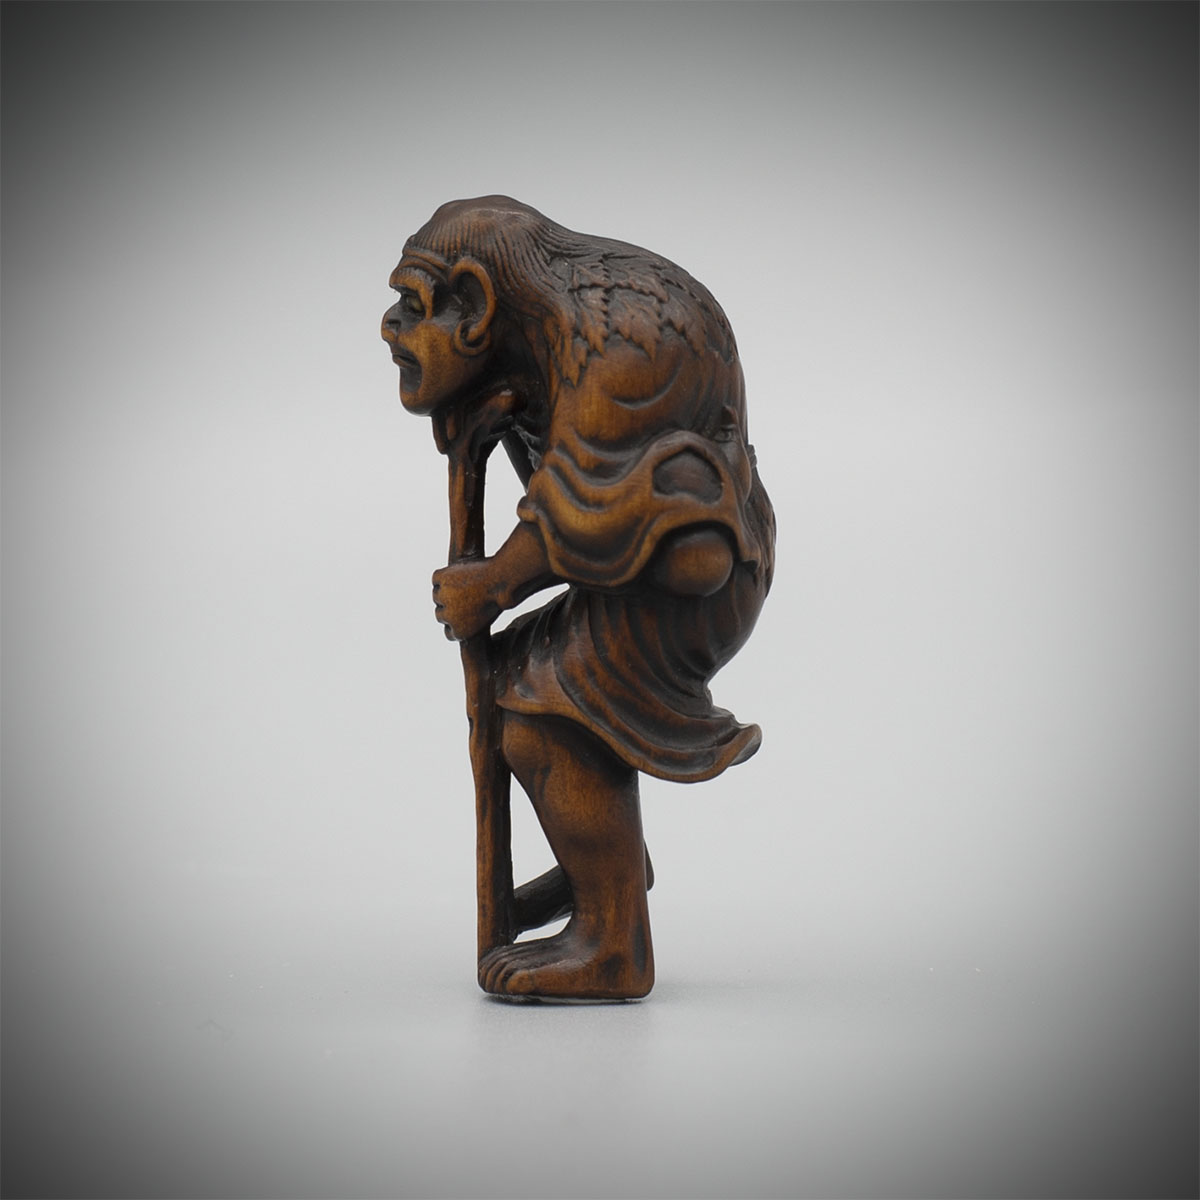 Wood Netsuke of Tekkai Sennin Attributed to Soshin, MR3370